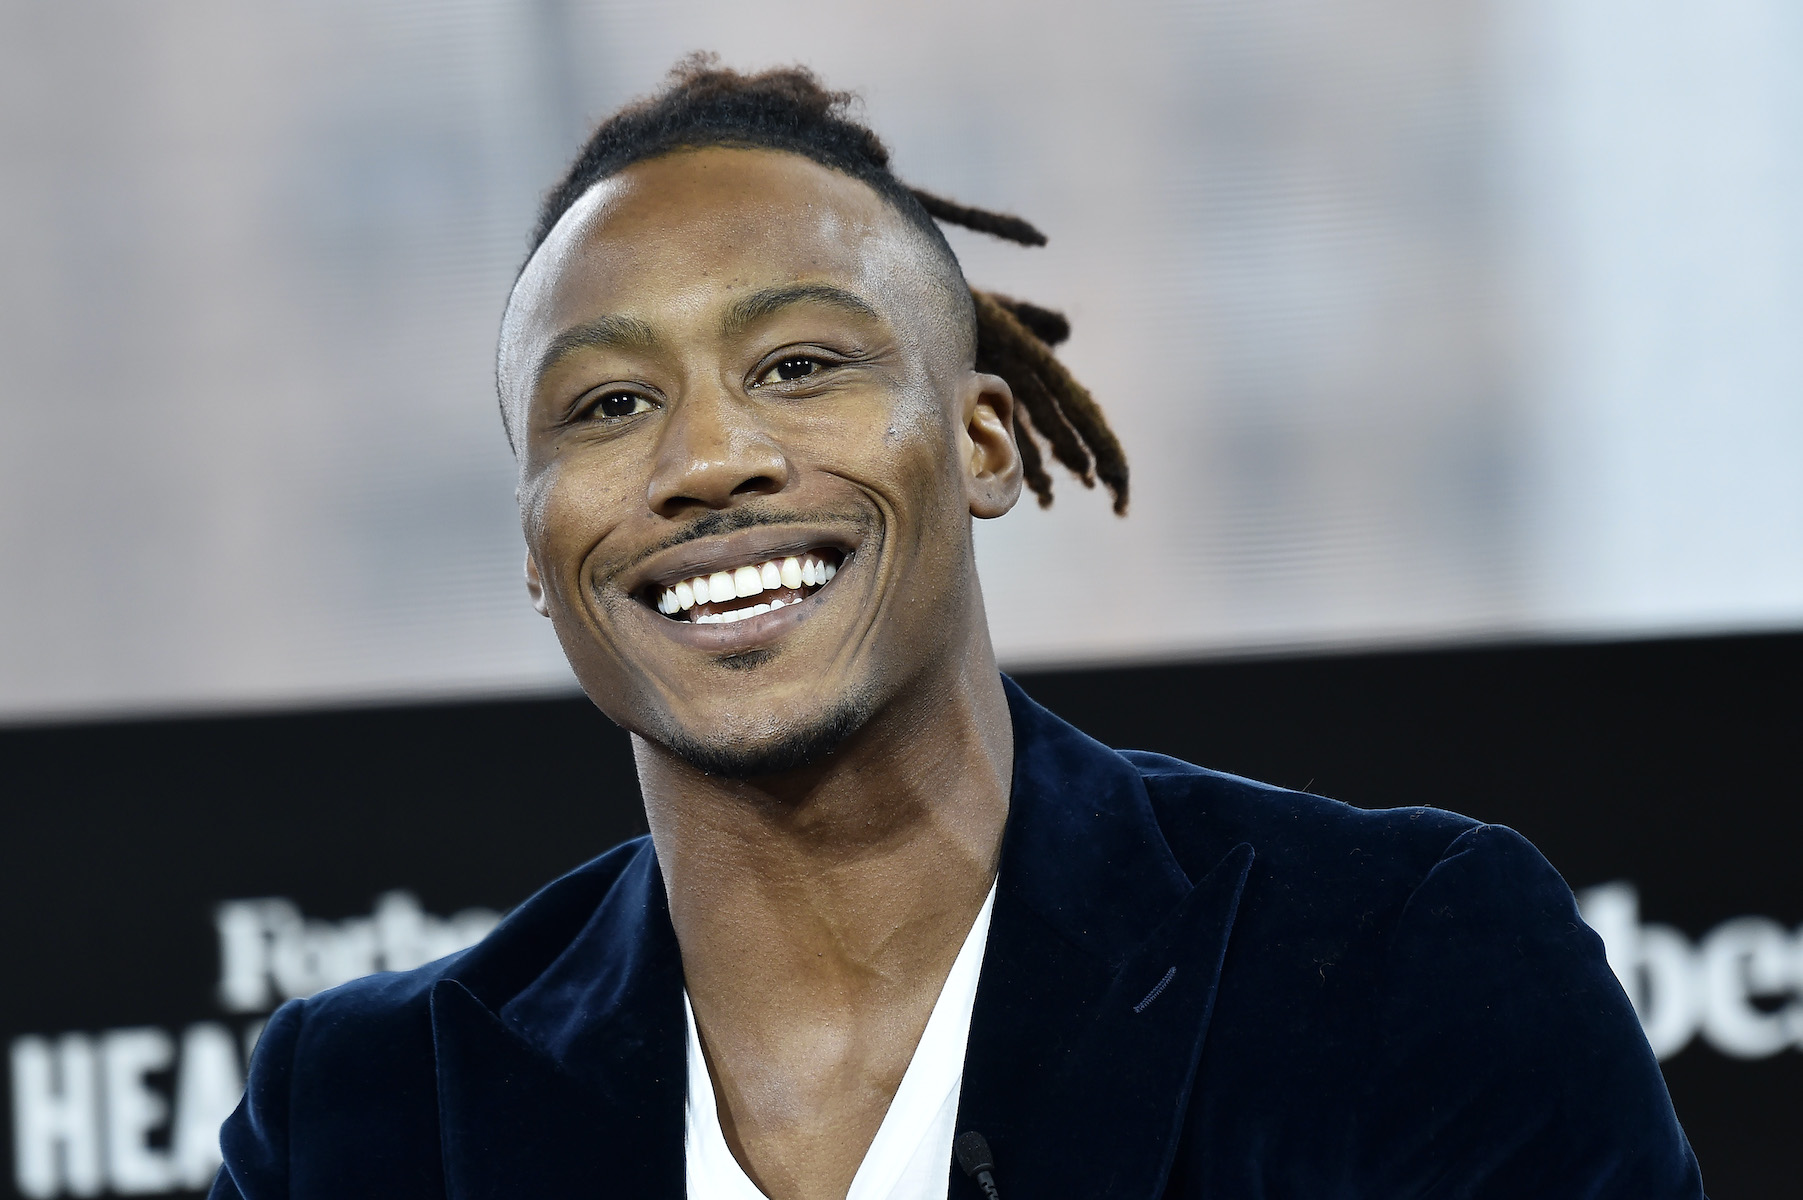 NFL wide receiver Brandon Marshall